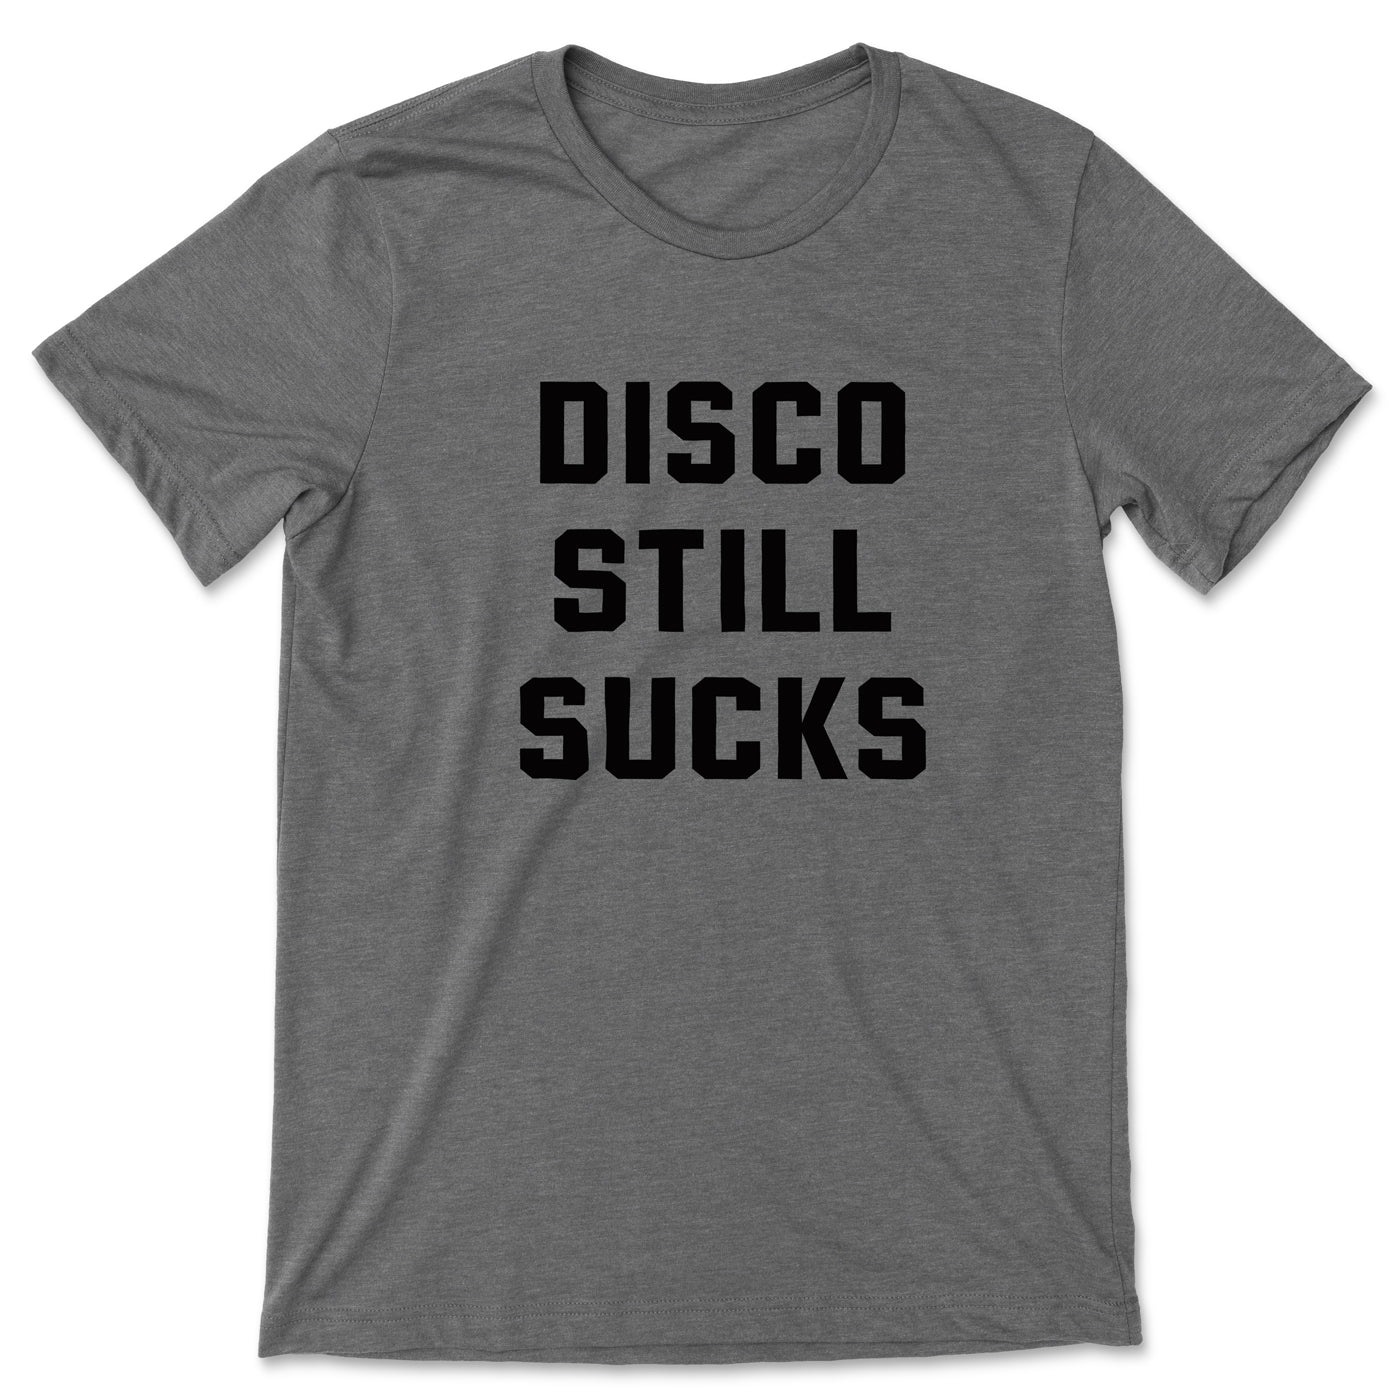 DISCO STILL SUCKS T-shirt